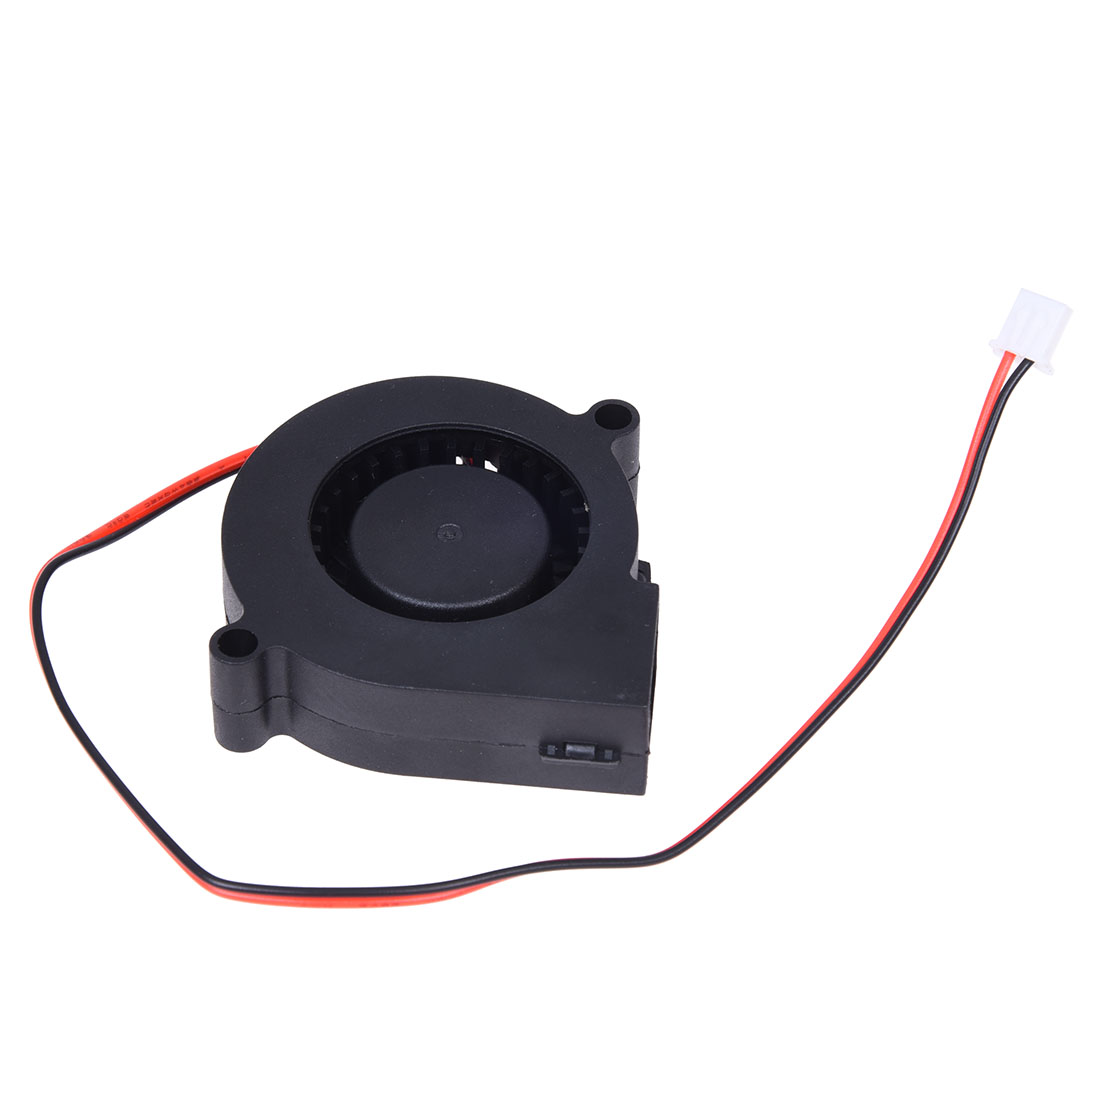 2 Pin Connector Brushless DC 24V 0.15A Turbo Blower Cooling Fan cnc dc spindle motor 500w 24v 0 629nm air cooling er11 brushless for diy pcb drilling new 1 year warranty free technical support